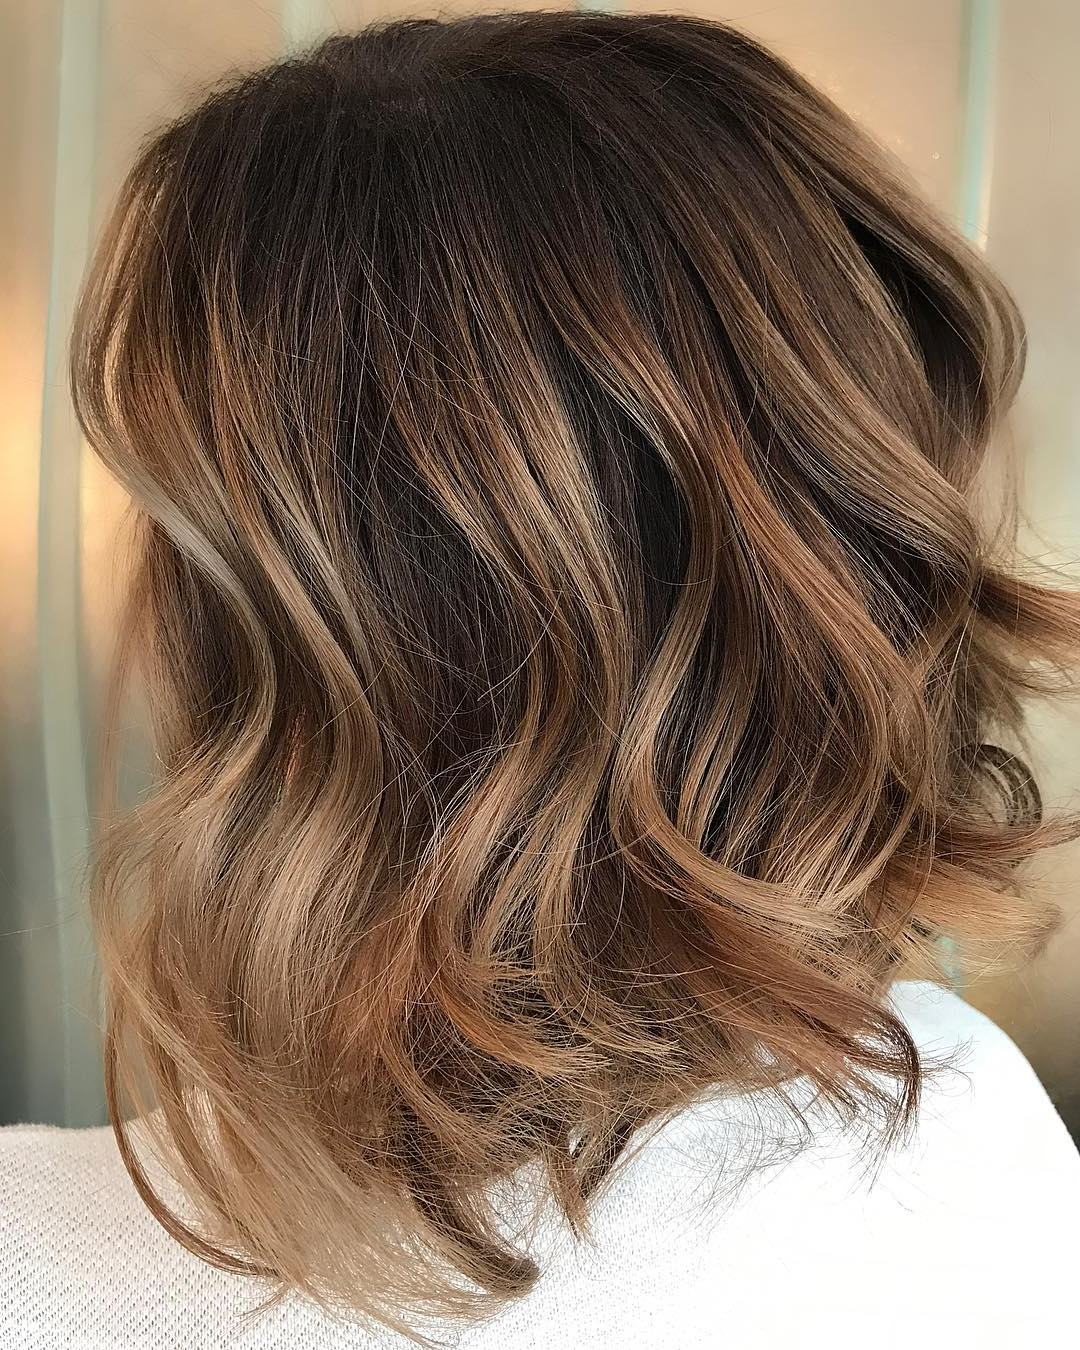 Recent Medium Hairstyles With Balayage In 10 Trendy Brown Balayage Hairstyles For Medium Length Hair (View 15 of 20)